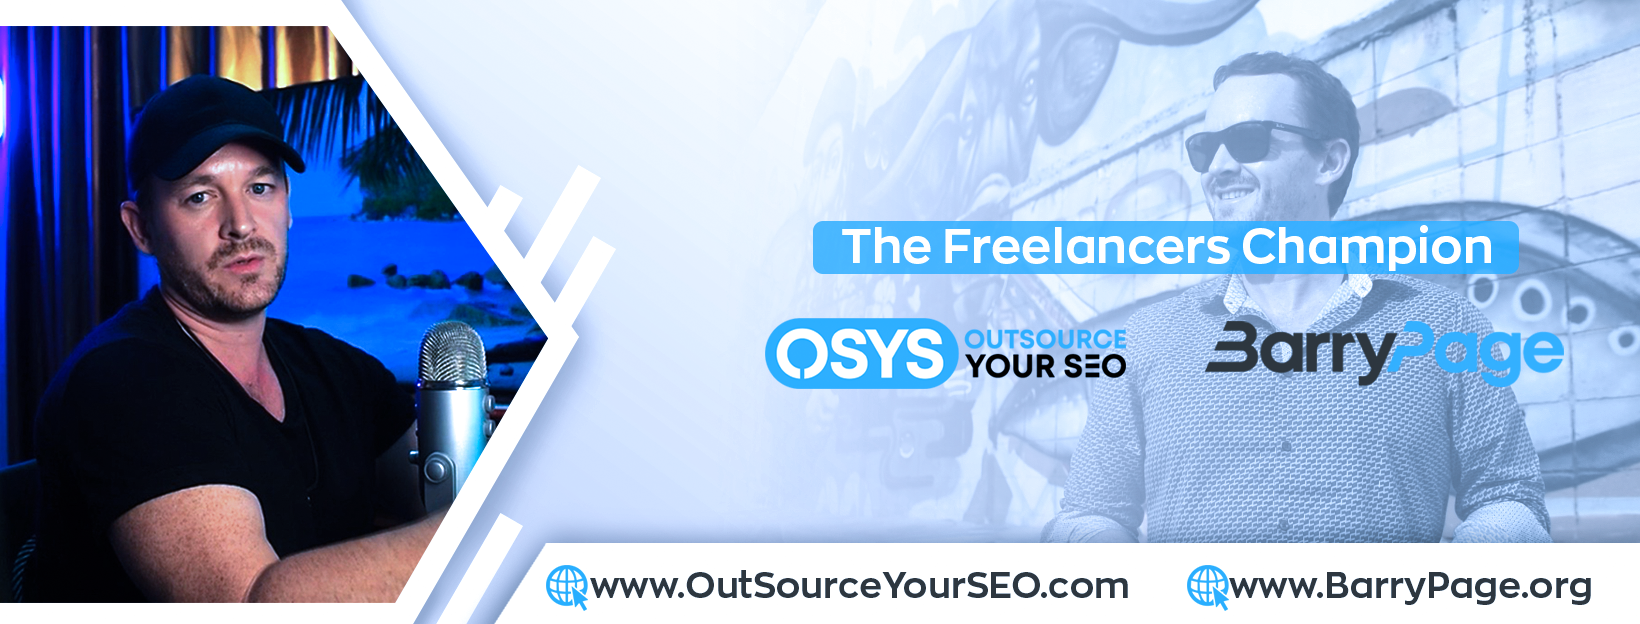 Customized SEO: 100% hands off, DFY services